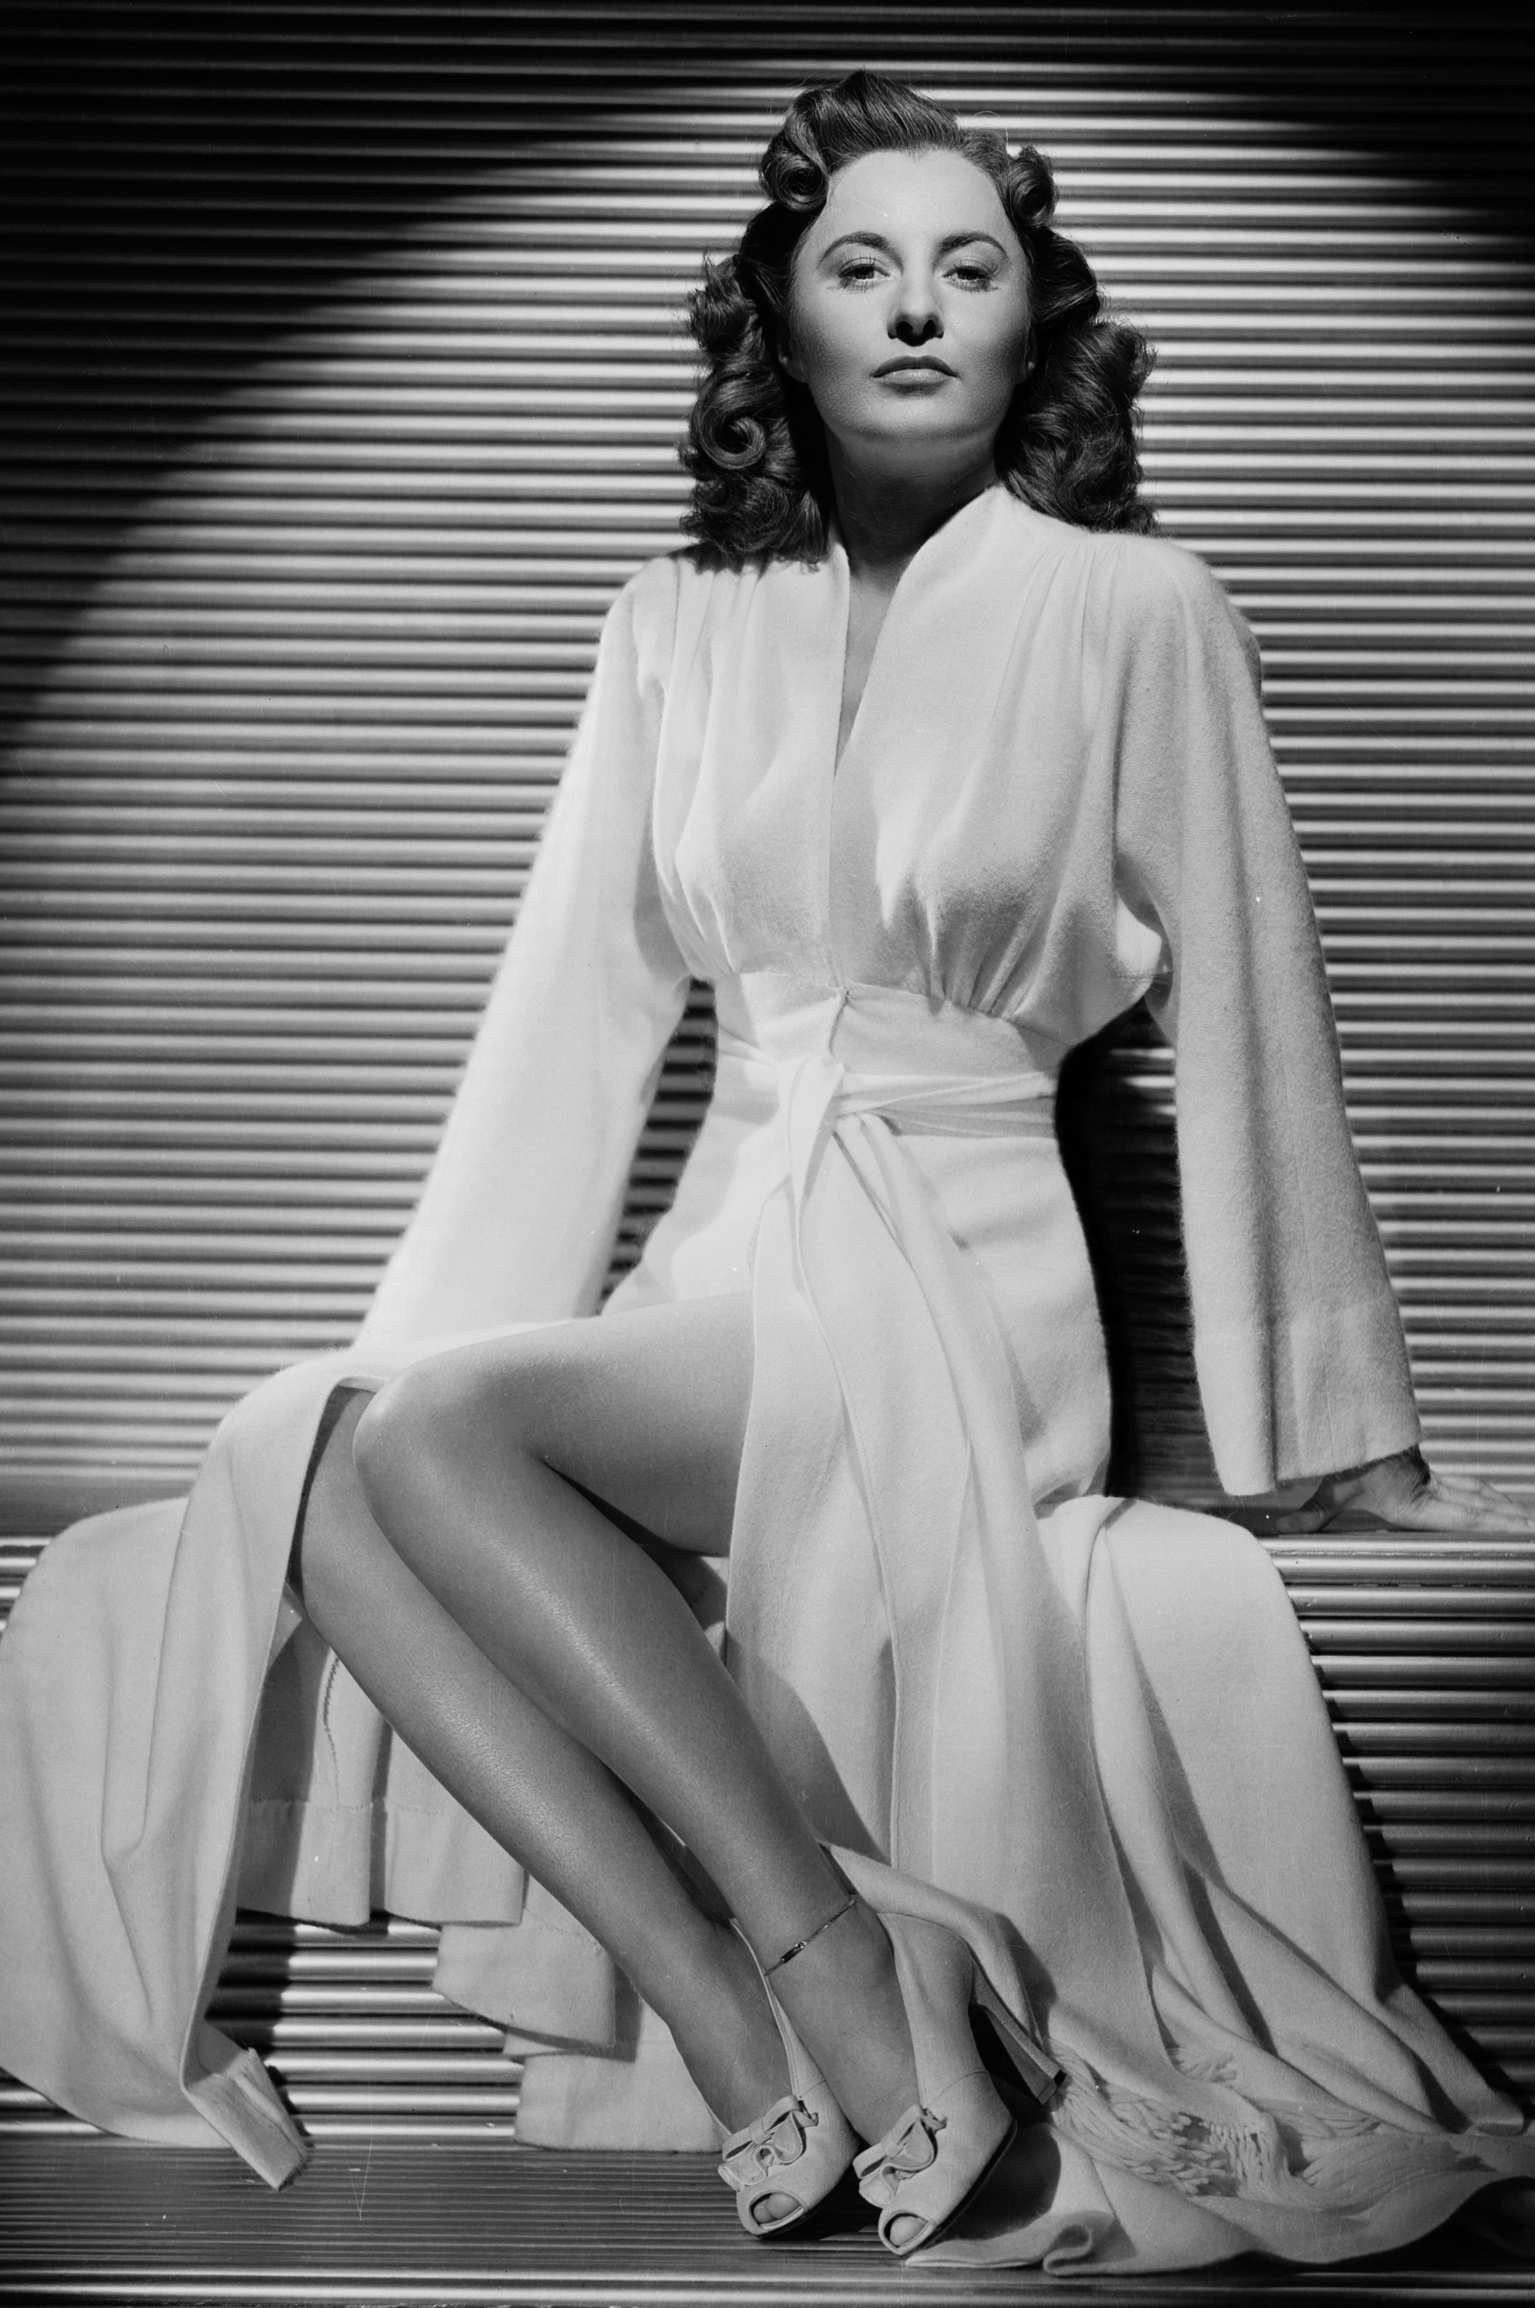 An Homage to the Lovely, Feisty Barbara Stanwyck